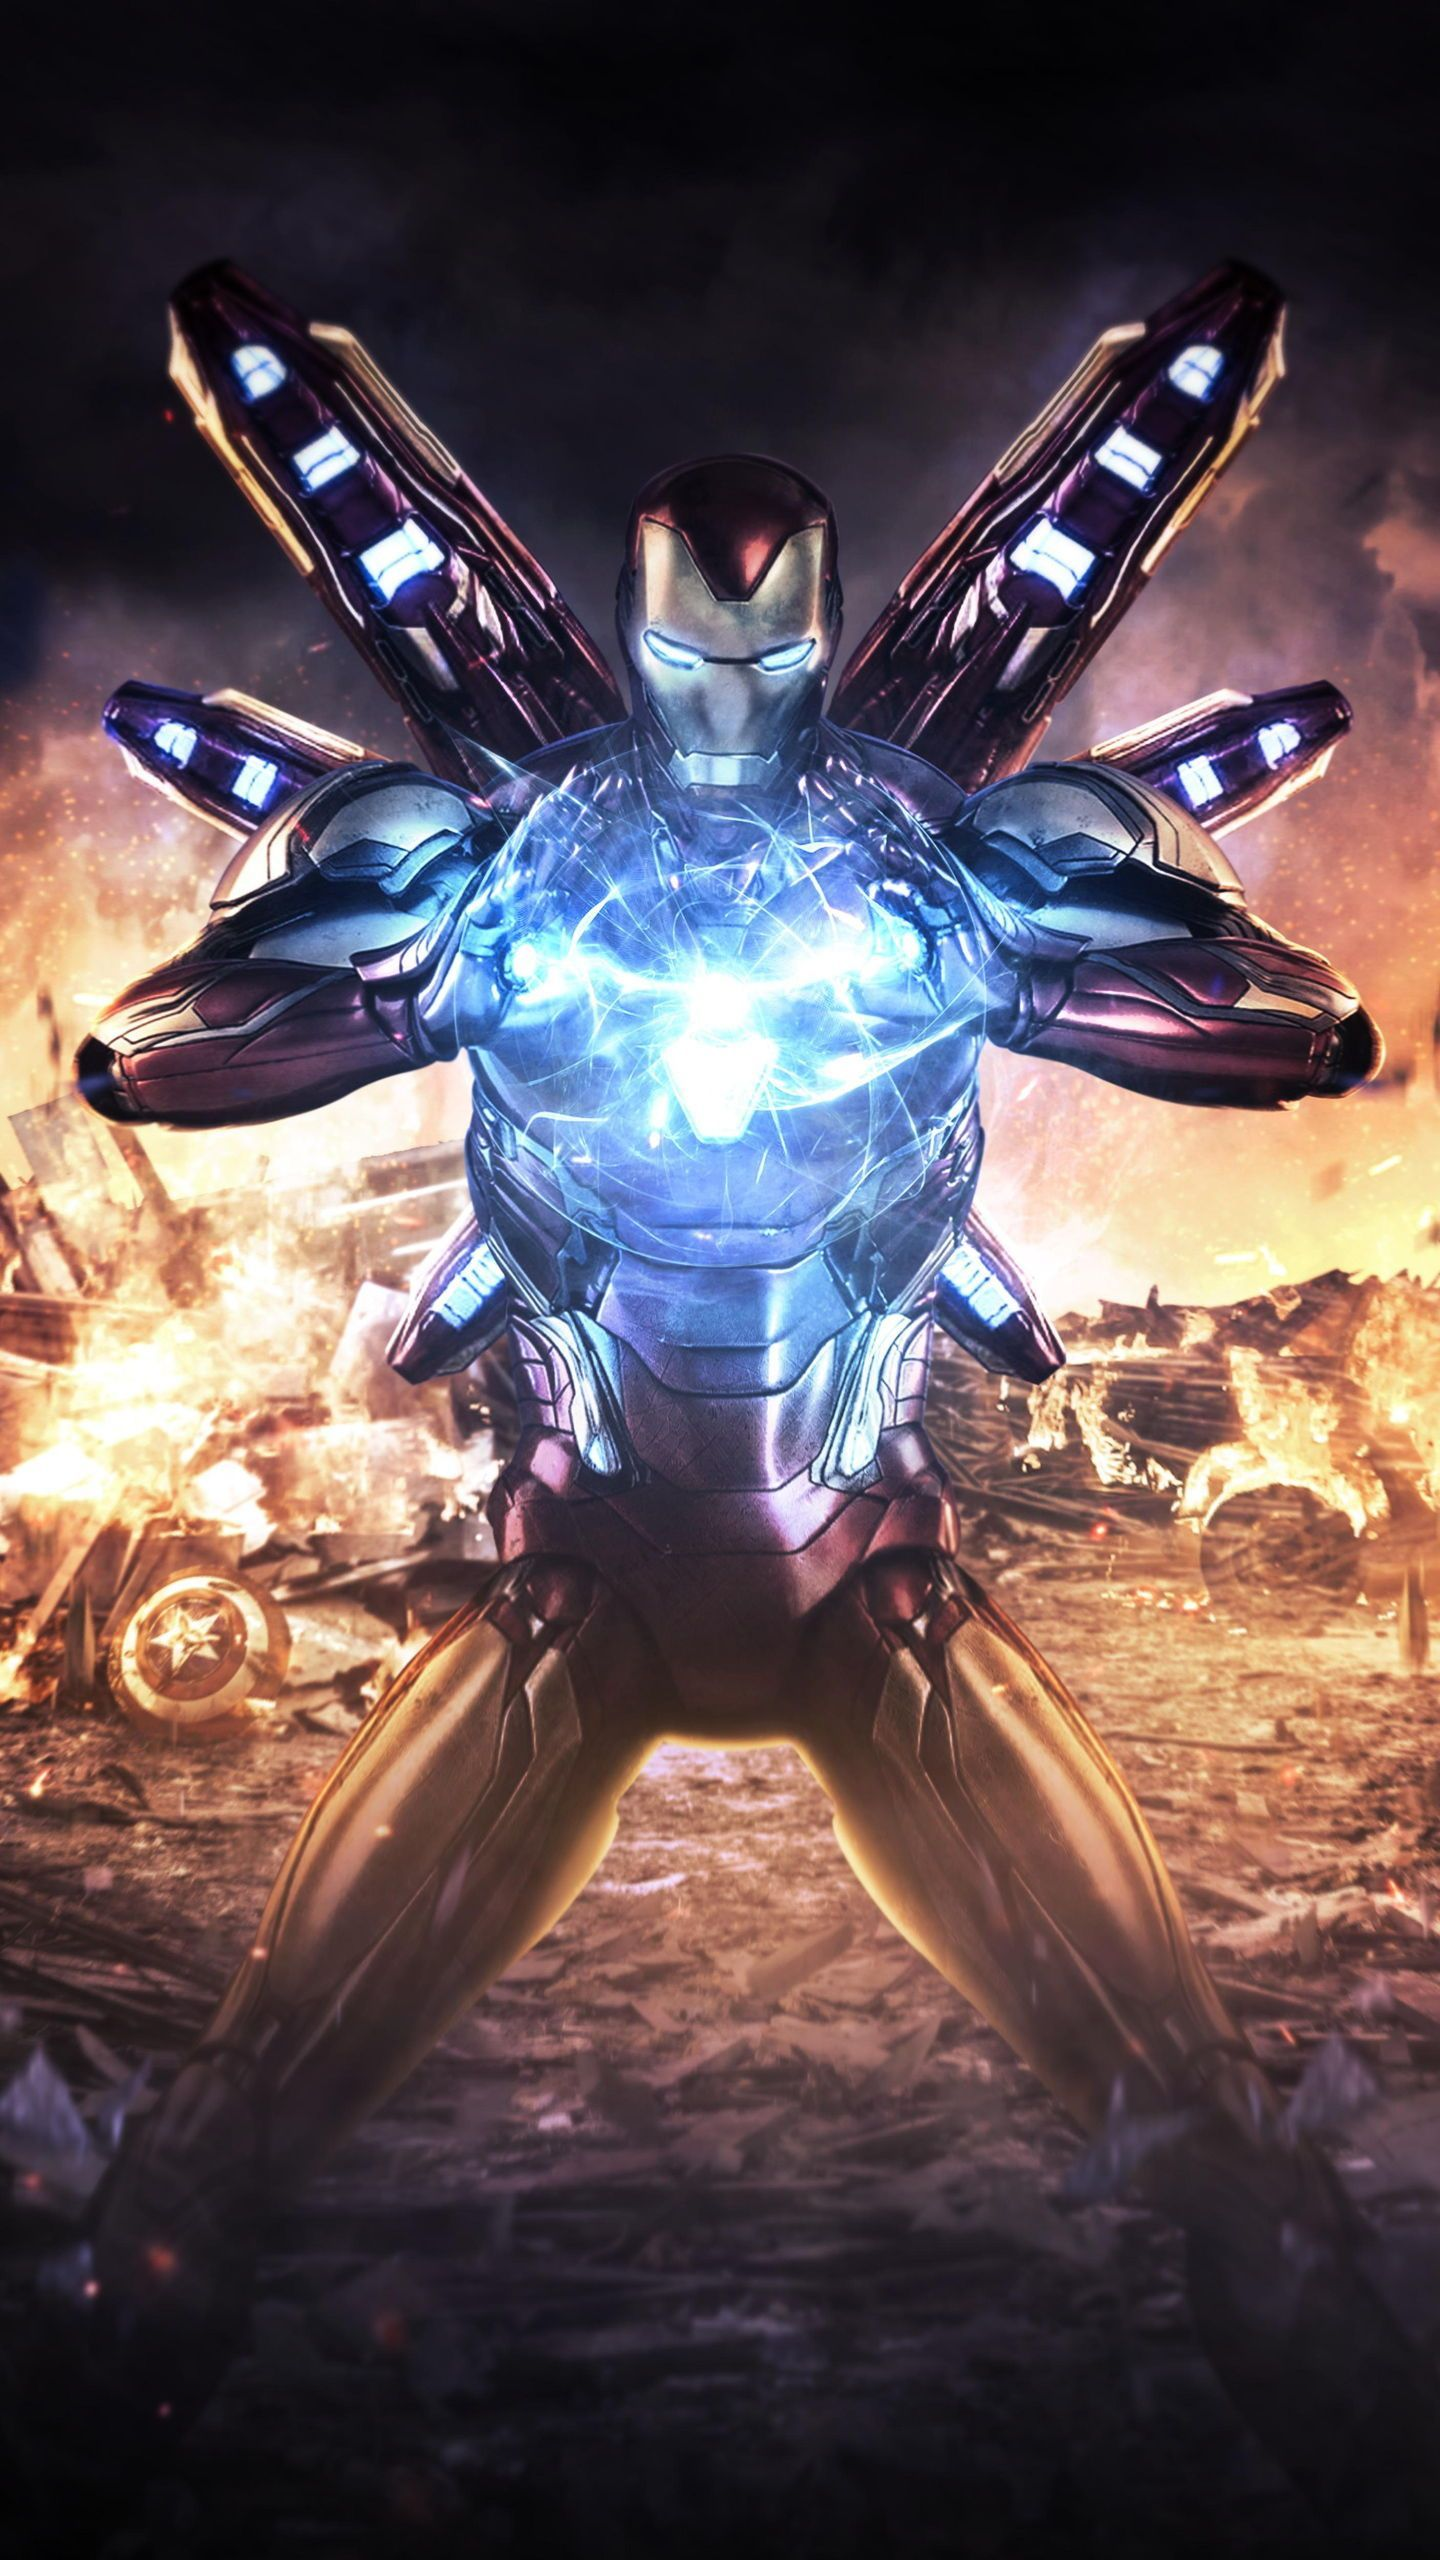 Marvel Avengers Wallpaper : Avenger Endgame Wallpaper iPhone 783d6599345f2baf458c83e31603c5e8